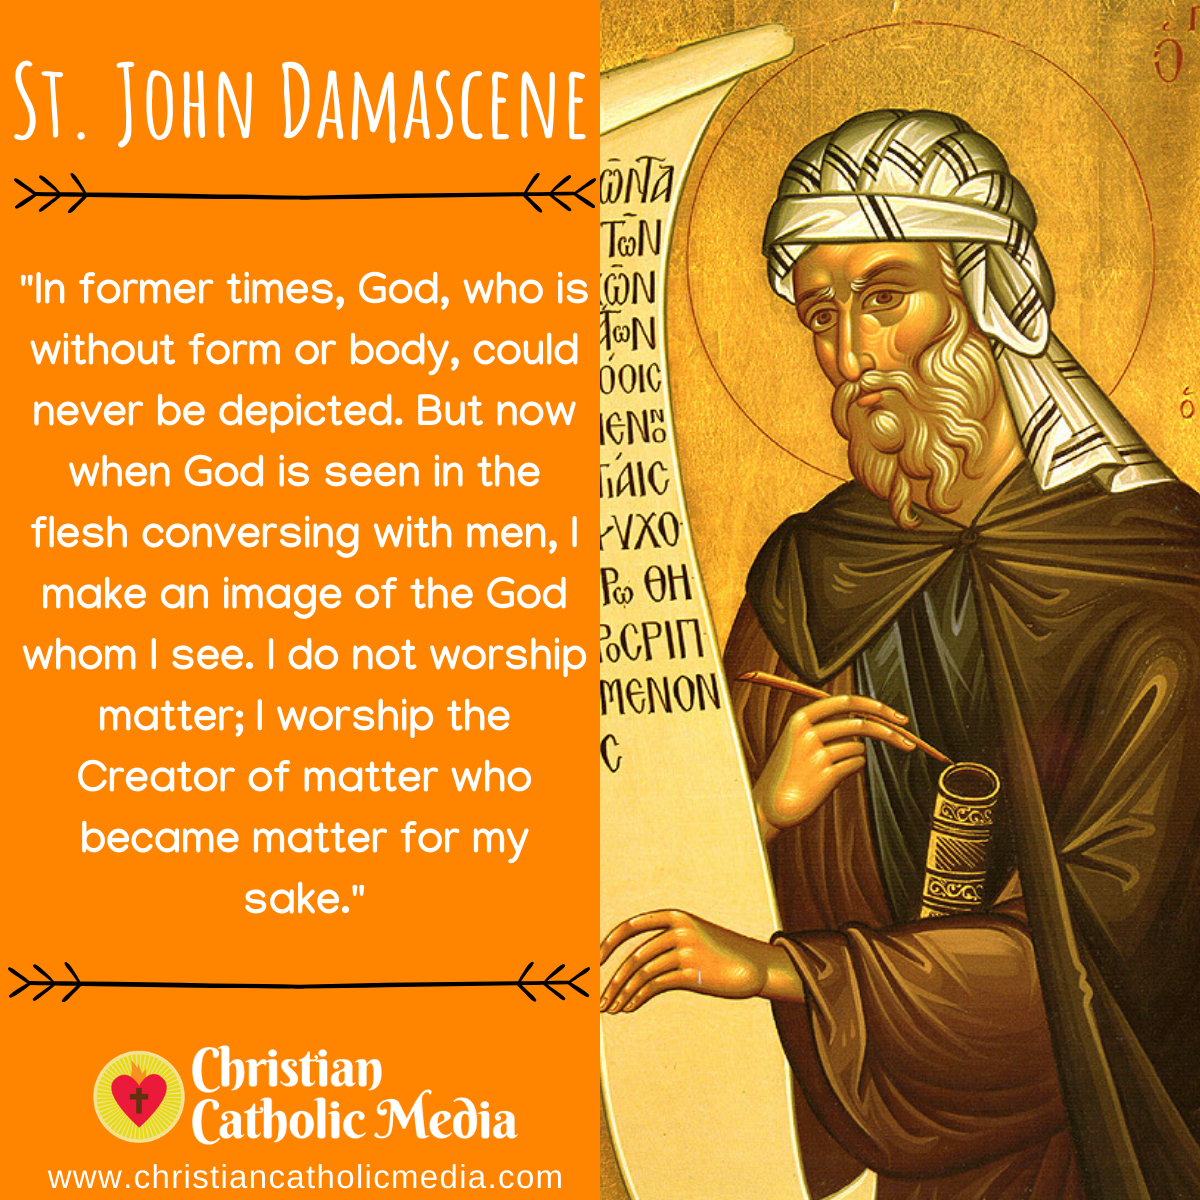 St. John Damascene - Friday December 4, 2020